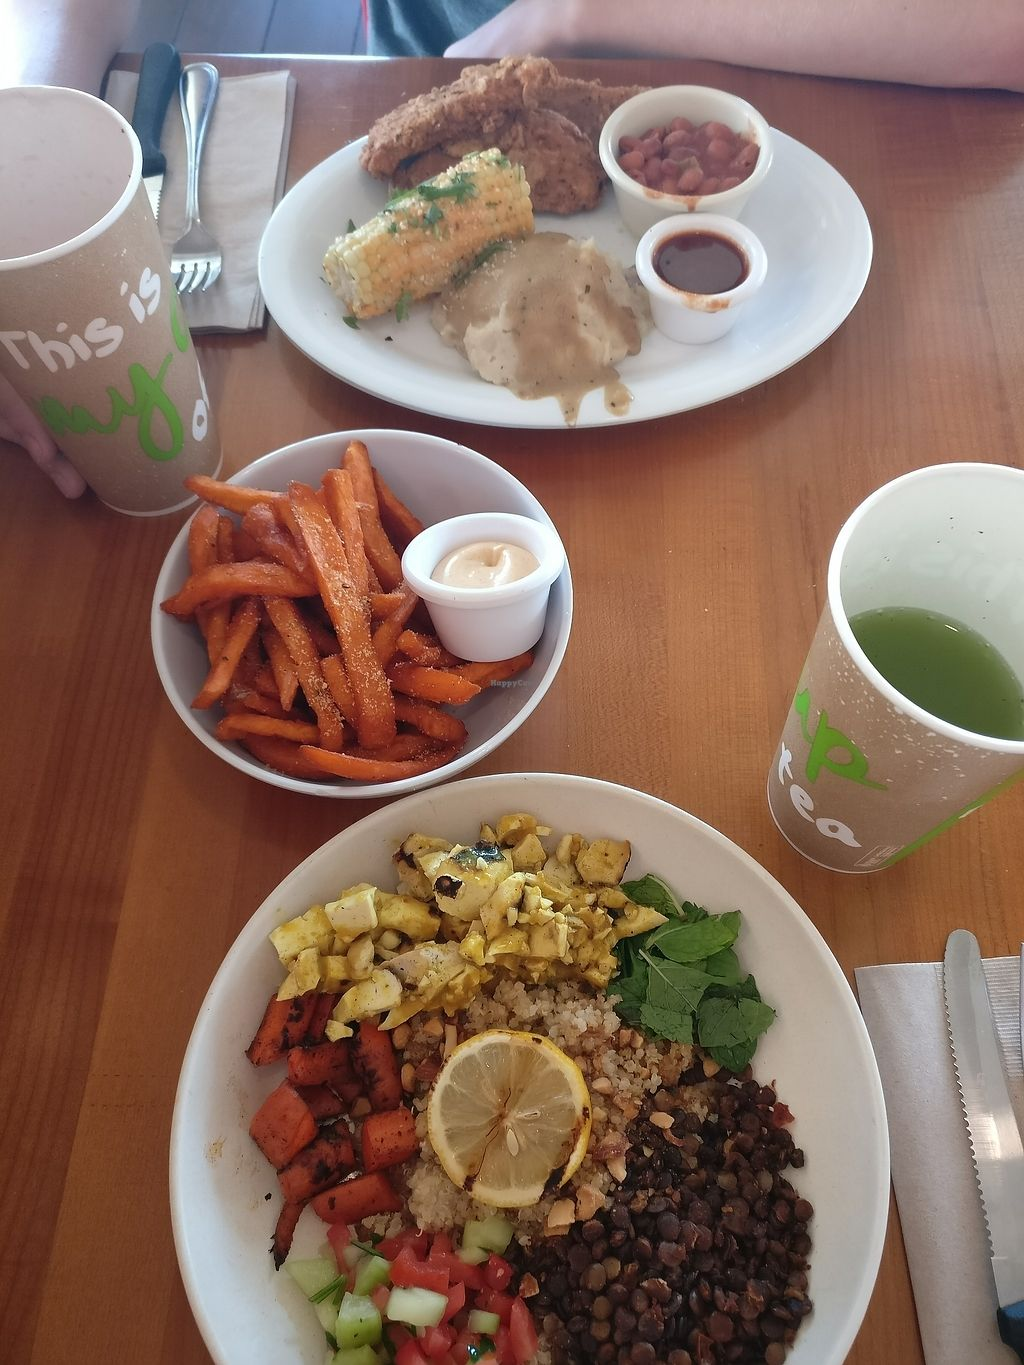 """Photo of Veggie Grill  by <a href=""""/members/profile/orangepawy"""">orangepawy</a> <br/>Backyard Spicy Fried 'Chicken', Sweat Potato Fries, Maroccon Bowl, Cucumber-Mint Lemonade and Strawberry Lemonade <br/> August 9, 2017  - <a href='/contact/abuse/image/24737/290625'>Report</a>"""